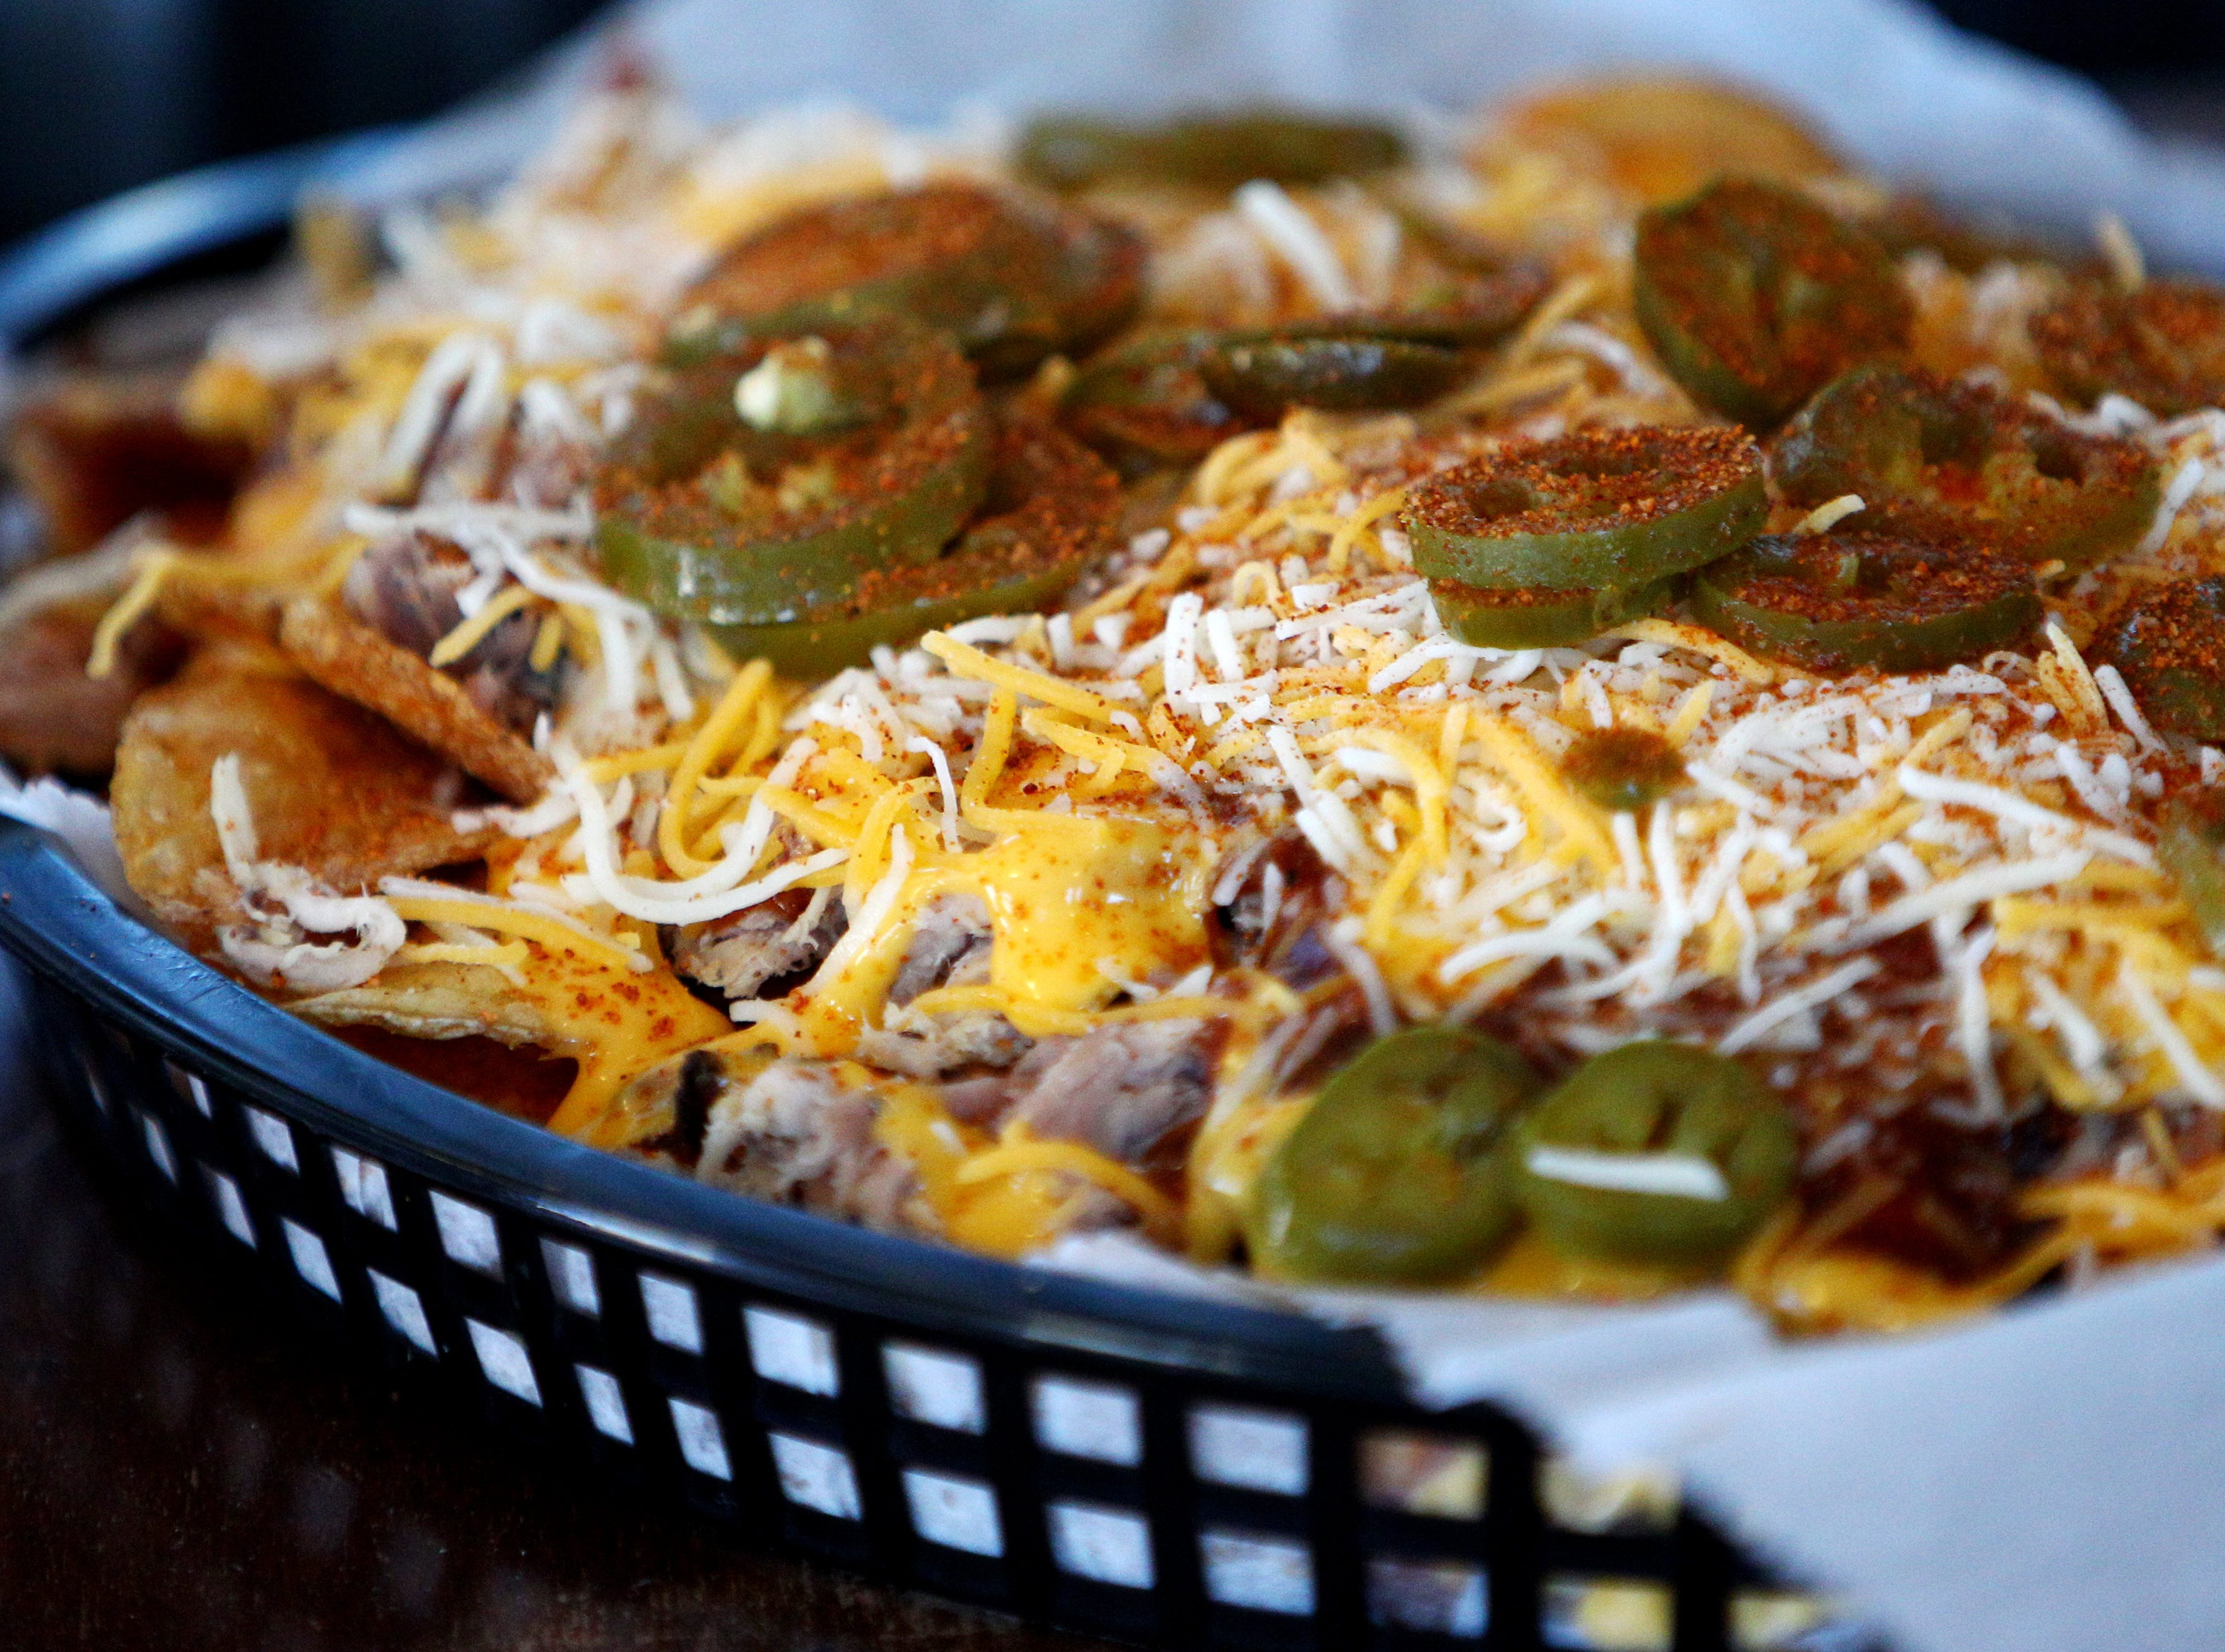 The bbq nachos at Central BBQ downtown can be served the traditional way on tortilla chips or on the homemade bbq chips on May 14, 2013.